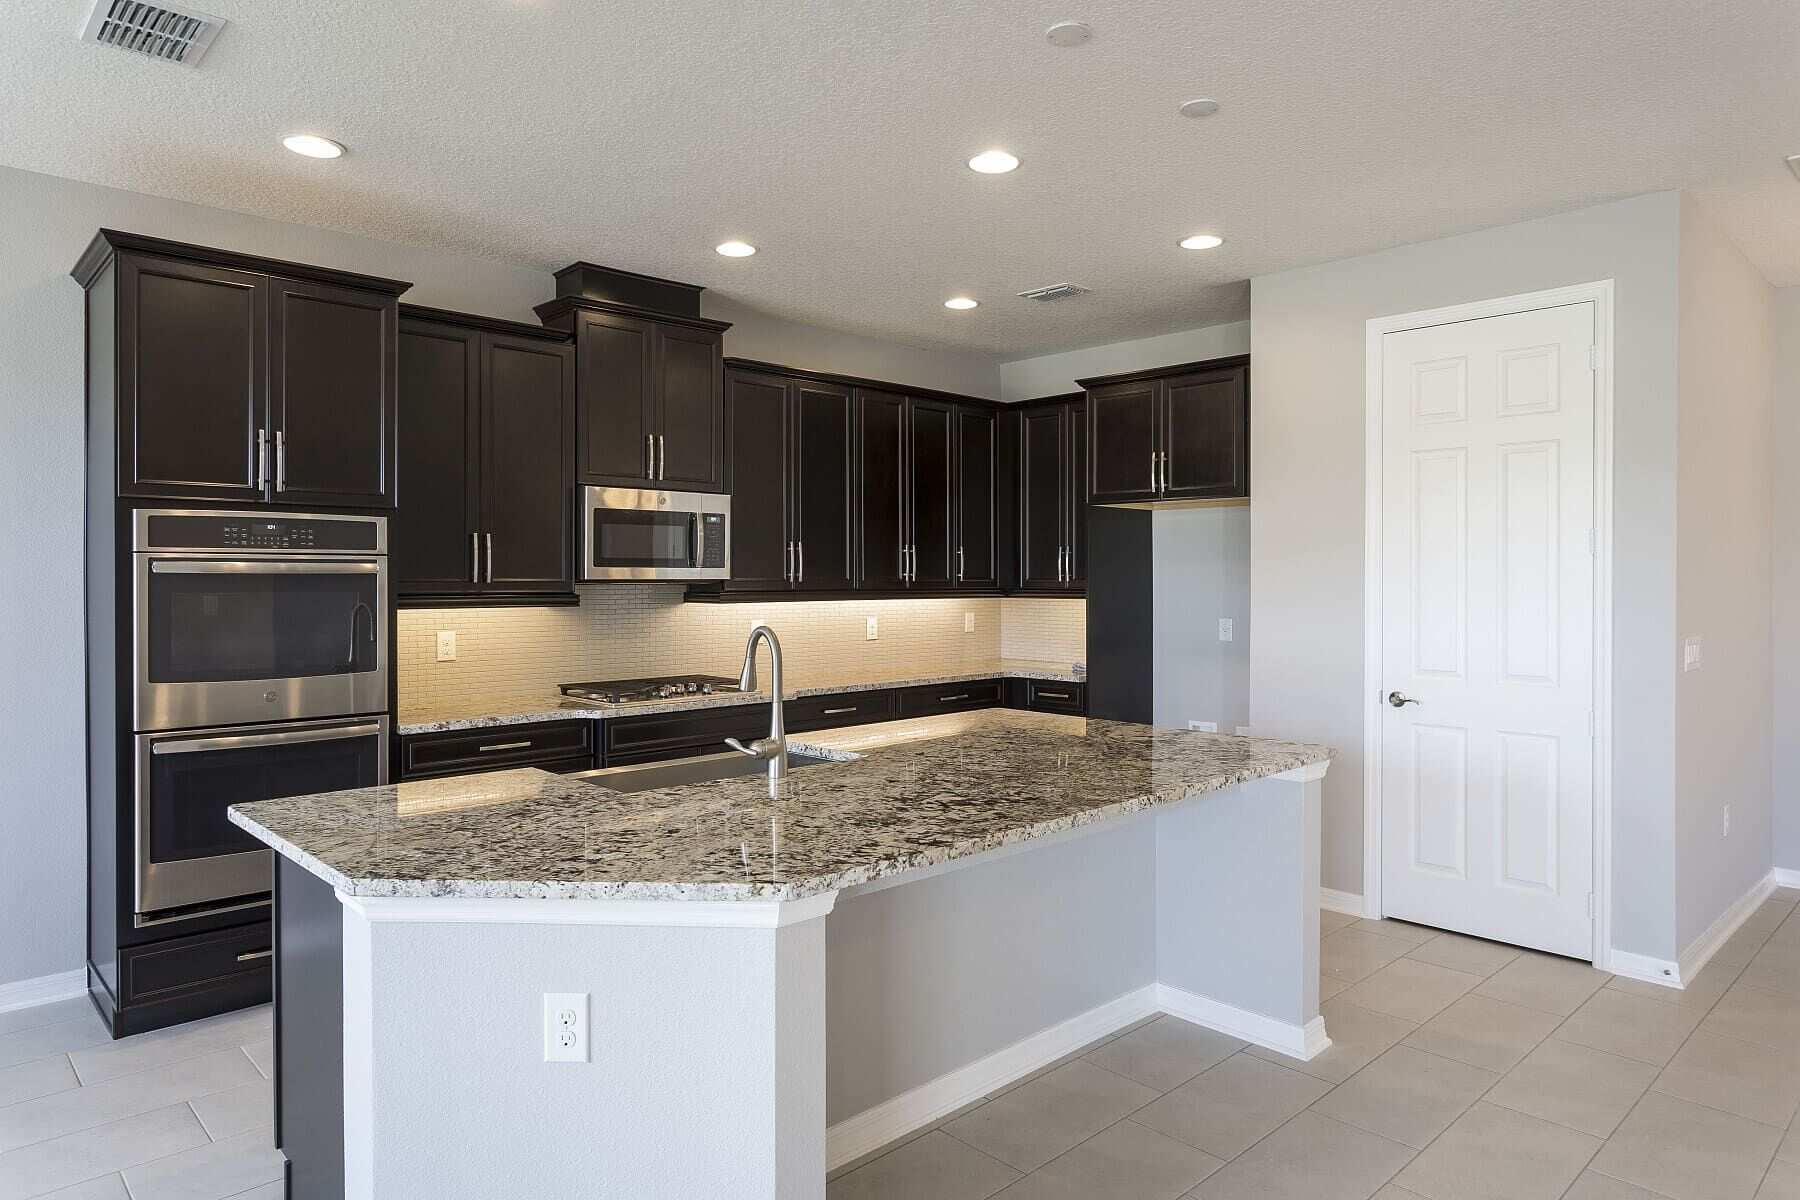 Kitchen featured in the Essex By M/I Homes in Orlando, FL